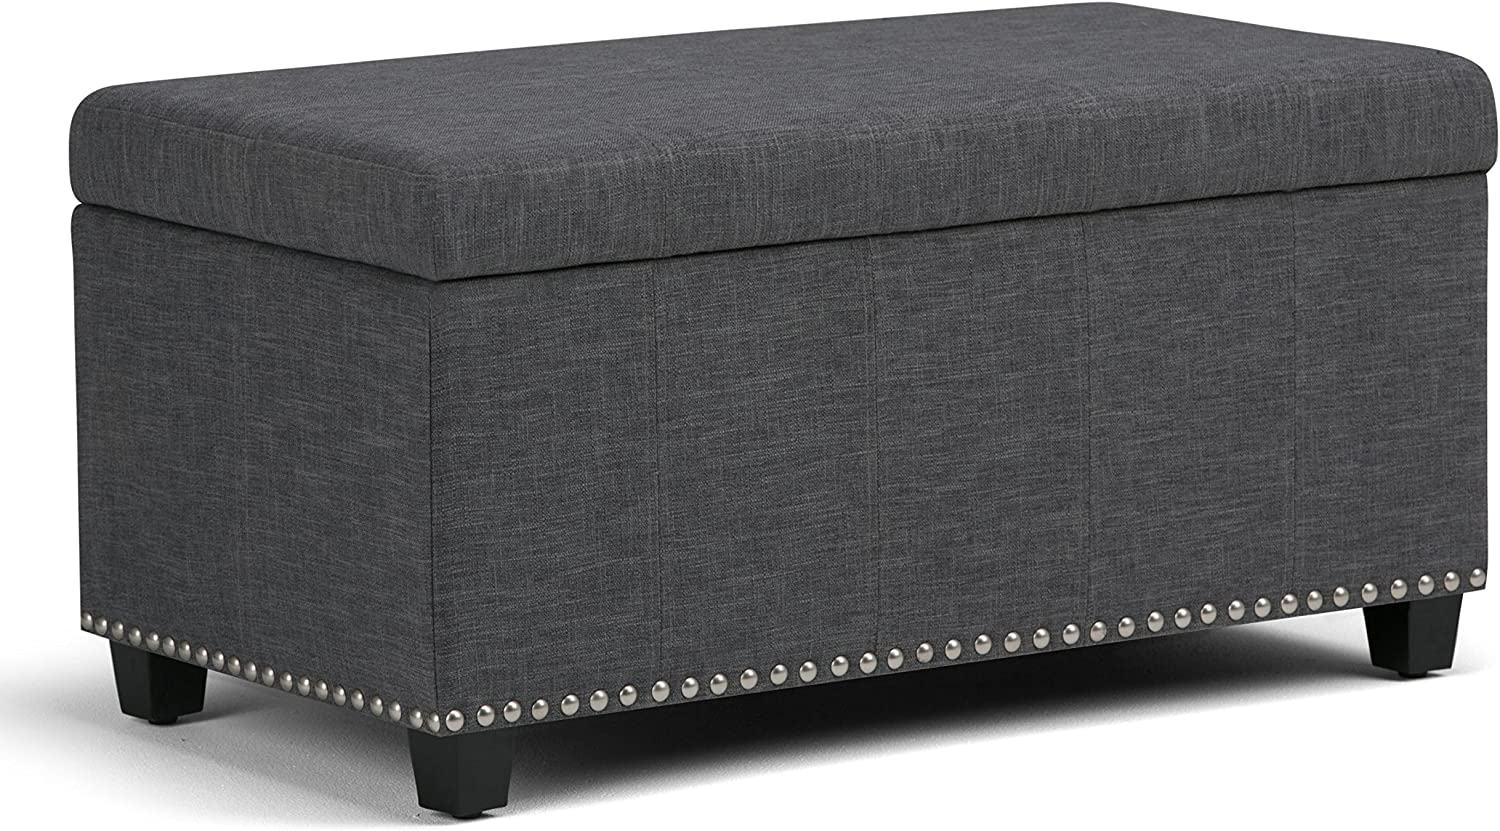 Simpli Home AXCOT-257-SGL Amelia 34 inch Wide Traditional Rectangle Storage Ottoman Bench in Slate Grey Linen Look Fabric